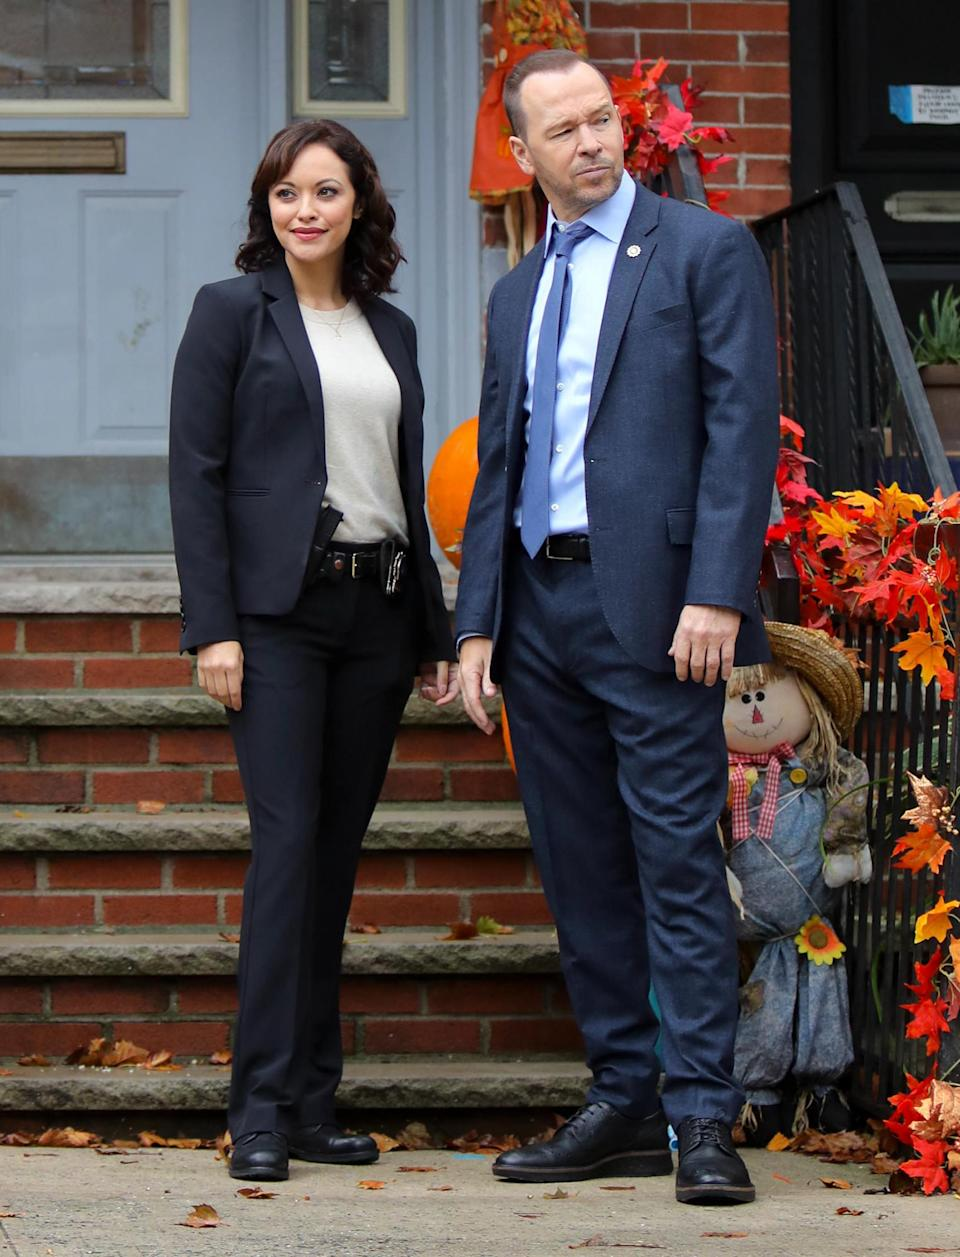 <p>Marisa Ramirez and Donnie Wahlberg are seen on the set of <em>Blue Bloods</em> on Friday in N.Y.C.</p>